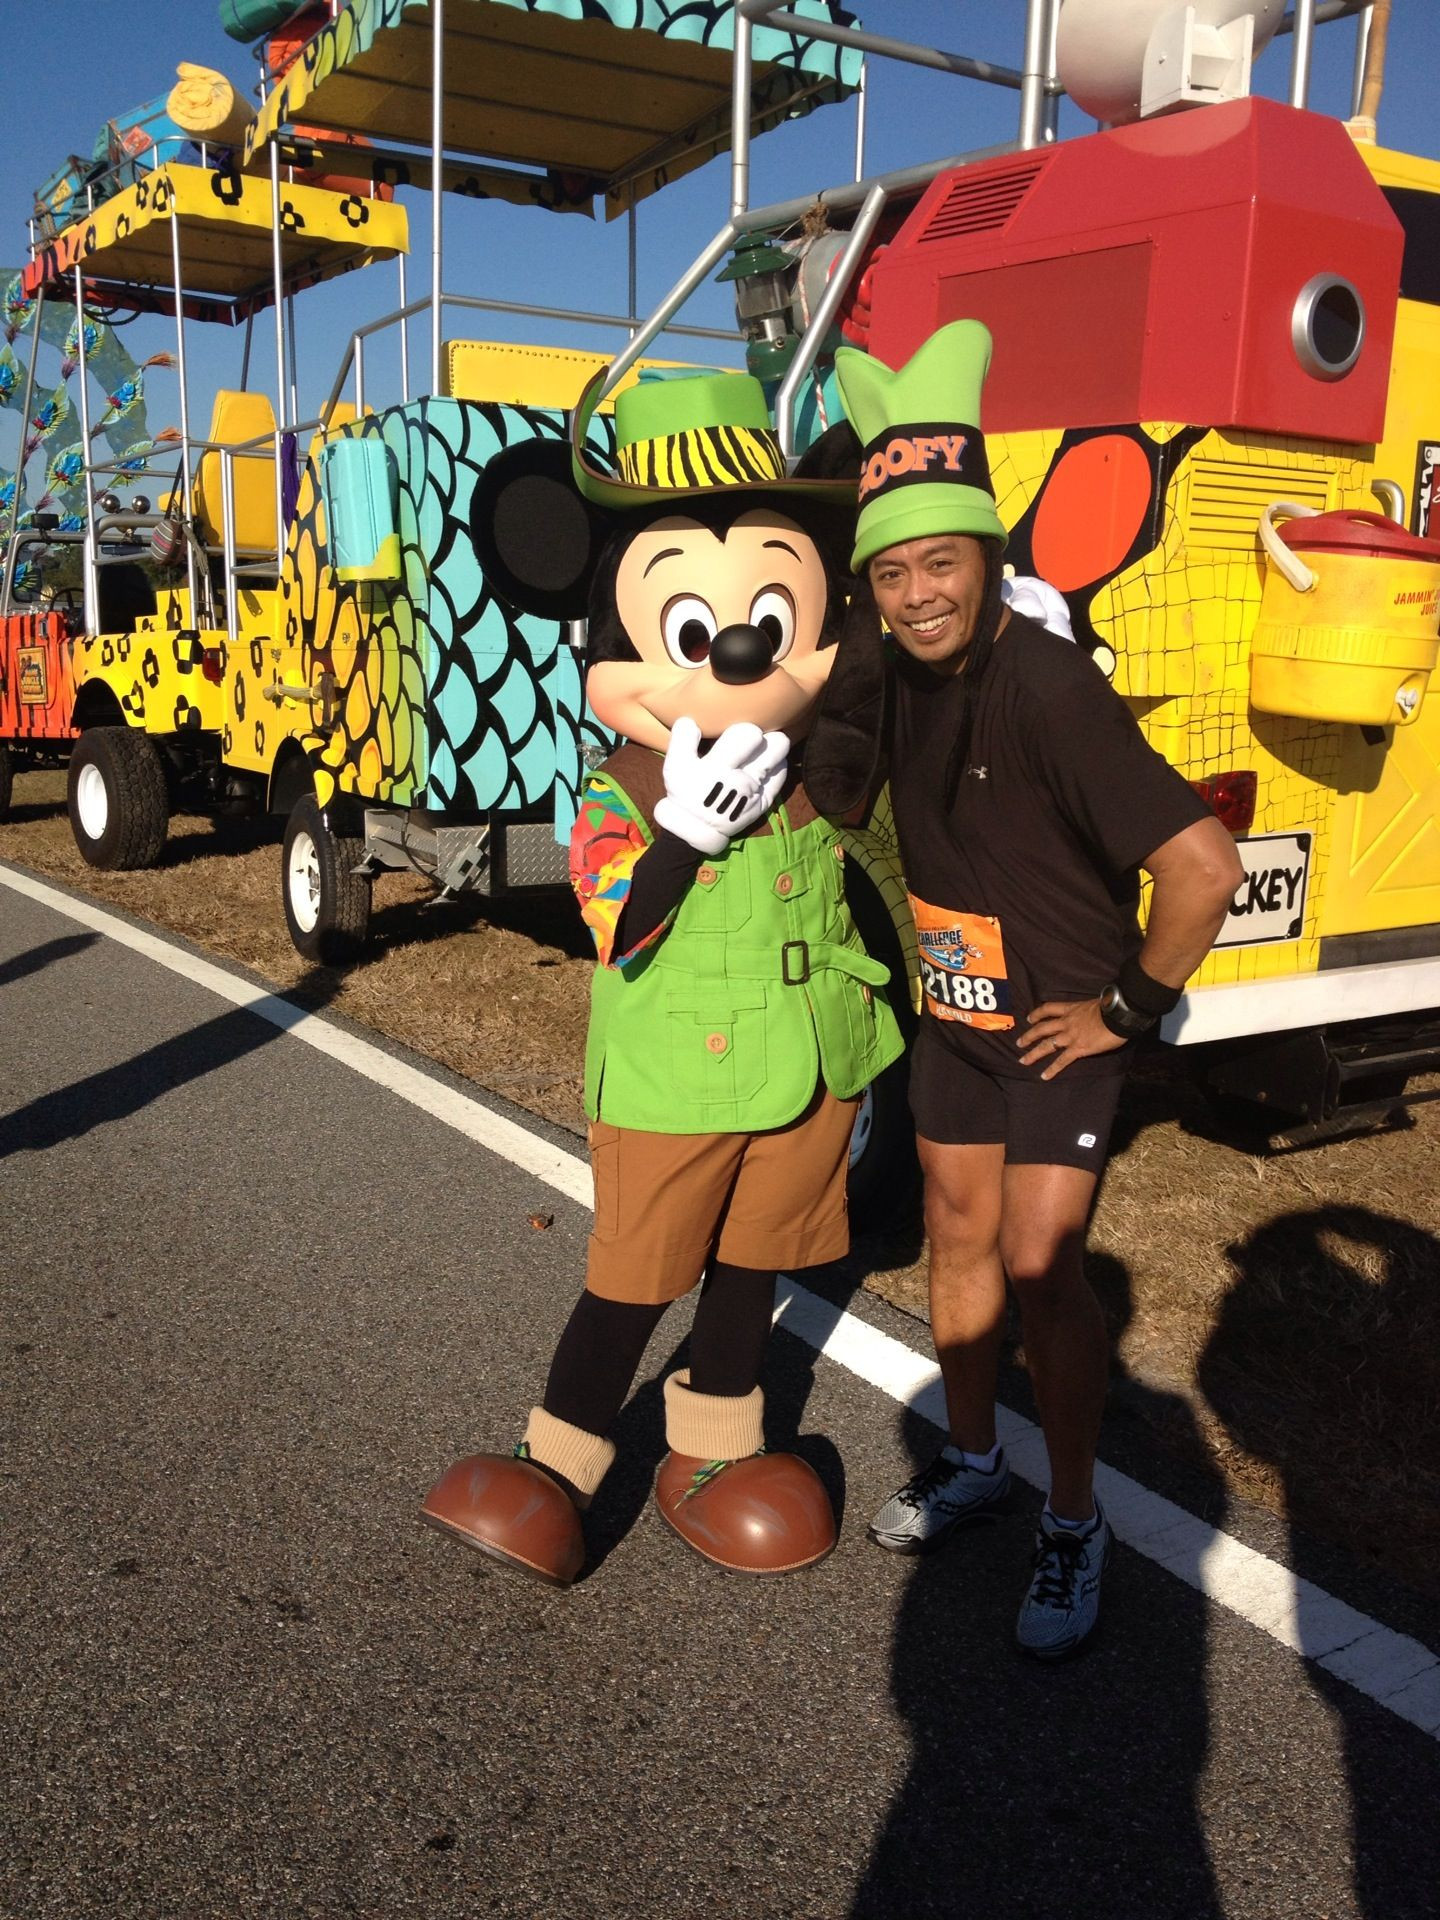 Goofy Run 2012...A half marathon on Saturday followed by the marathon on Sunday...you gotta be GOOFY...but did it!